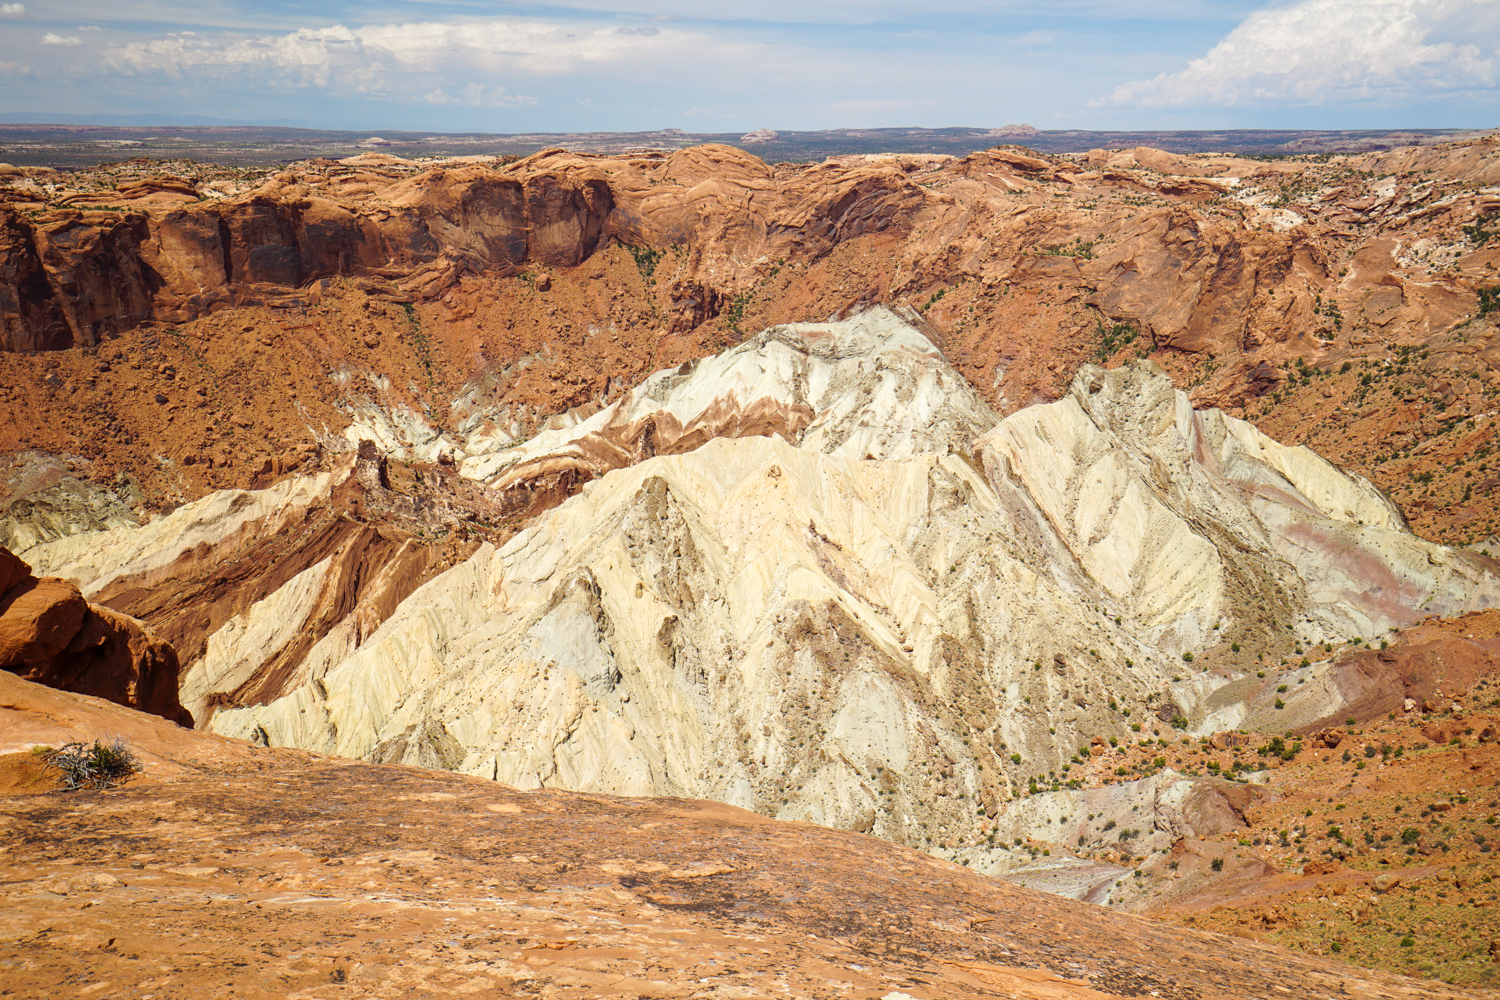 Upheaval Dome - scientists still can't determine what caused the giant salt deposite